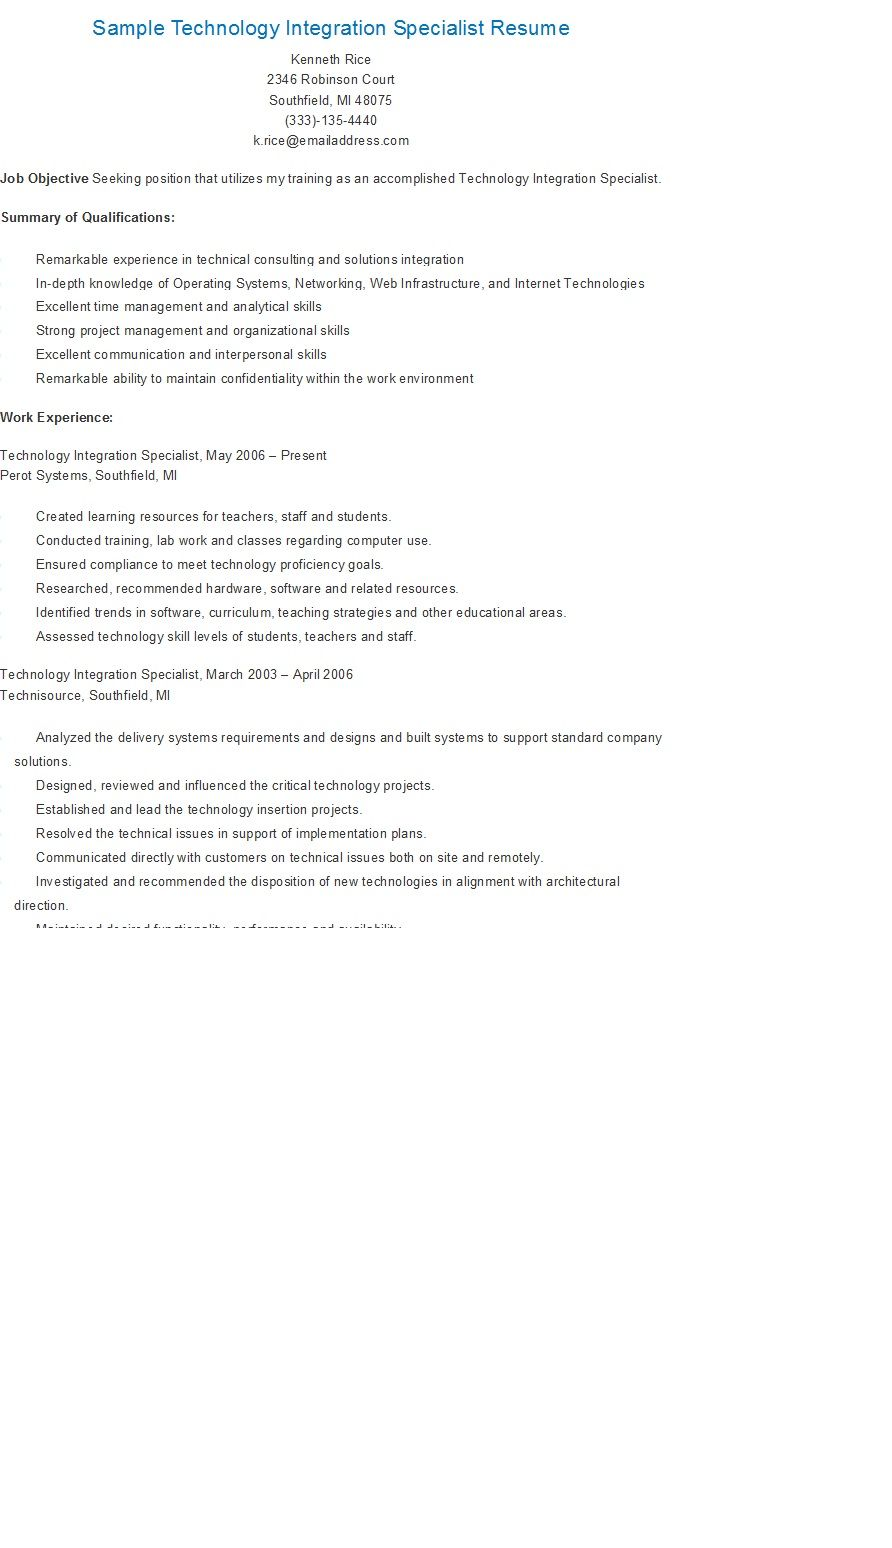 sample technology integration specialist resume resame